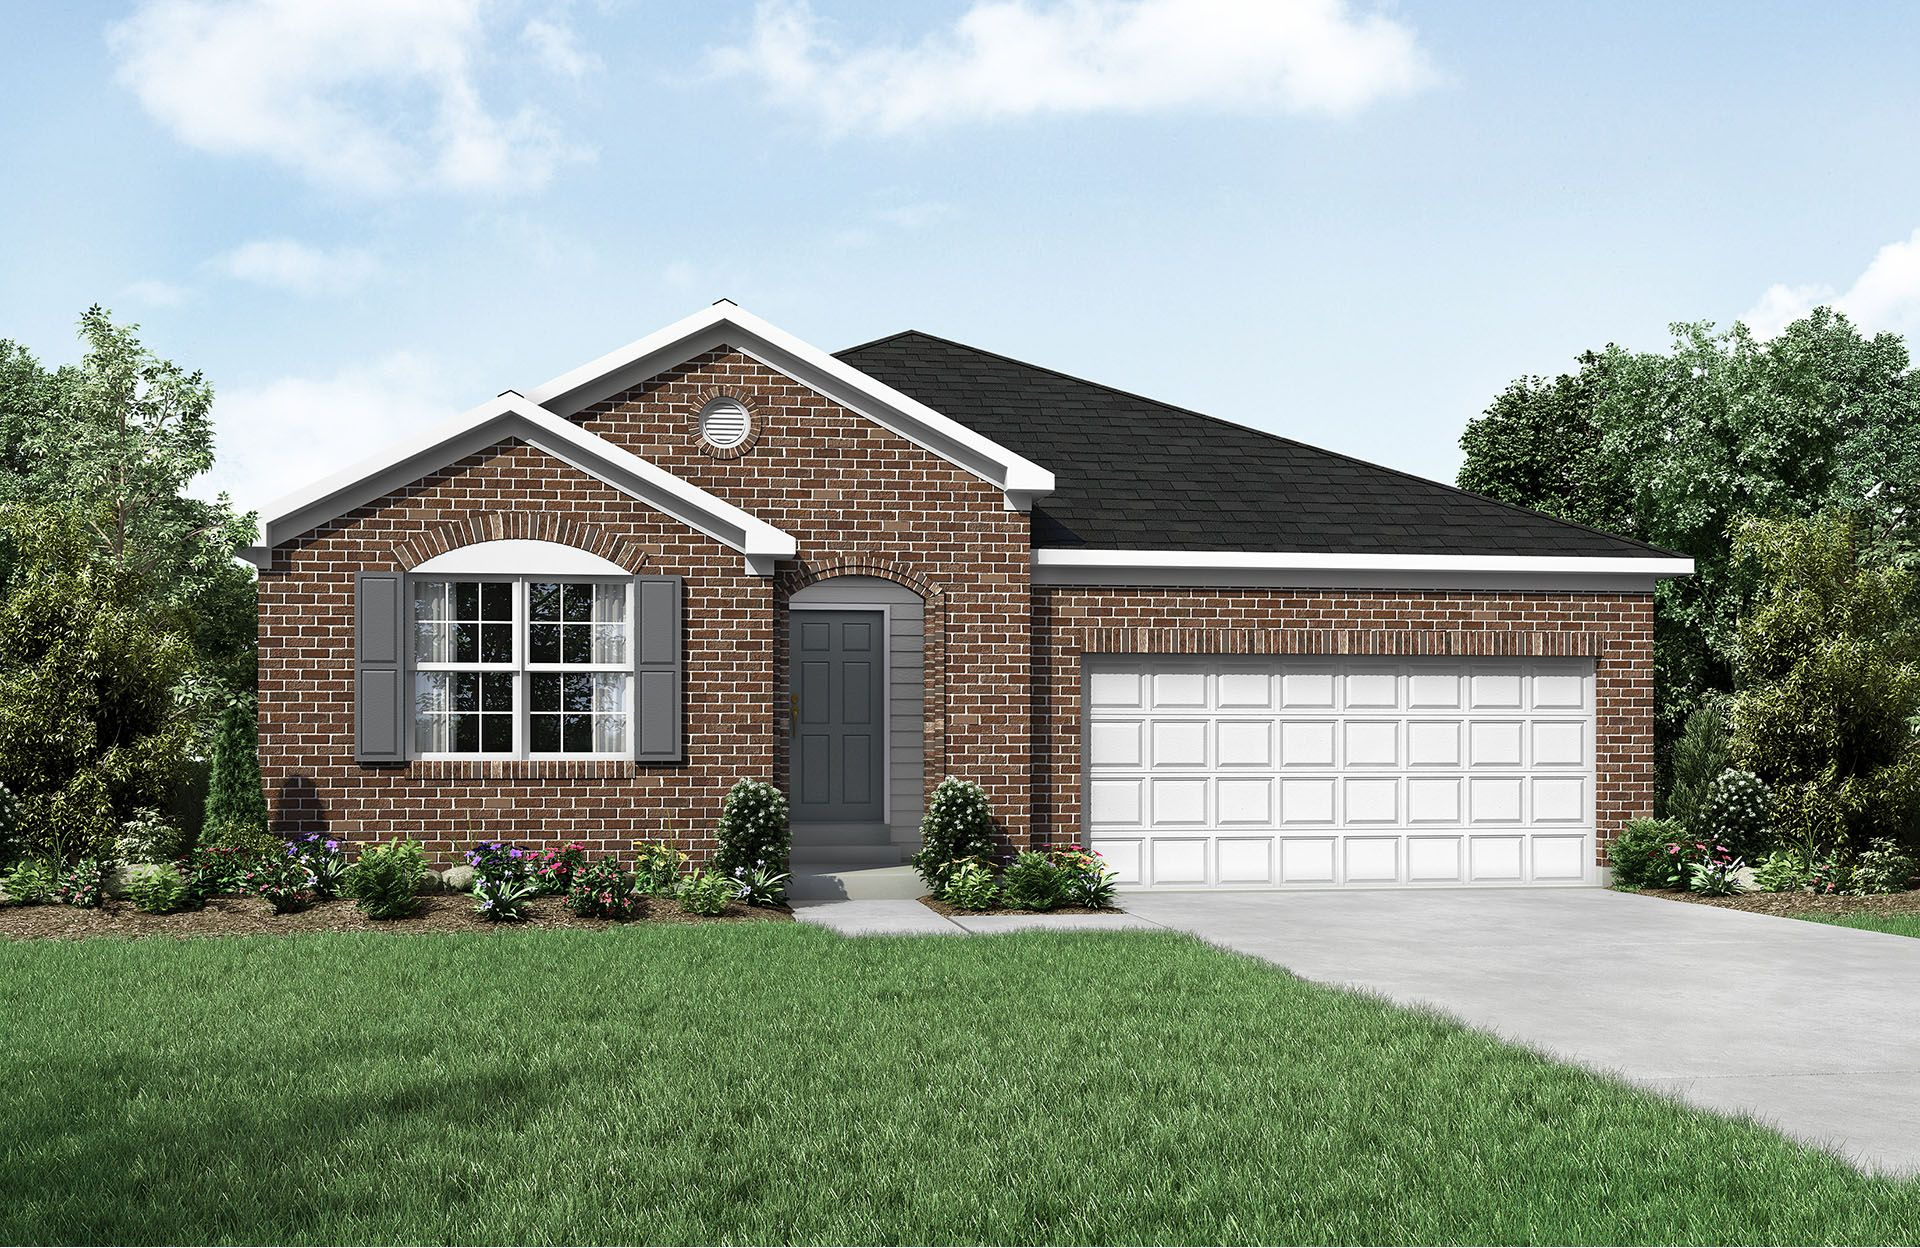 Real Estate at Wildcat Run, Walton in Boone County, KY 41094